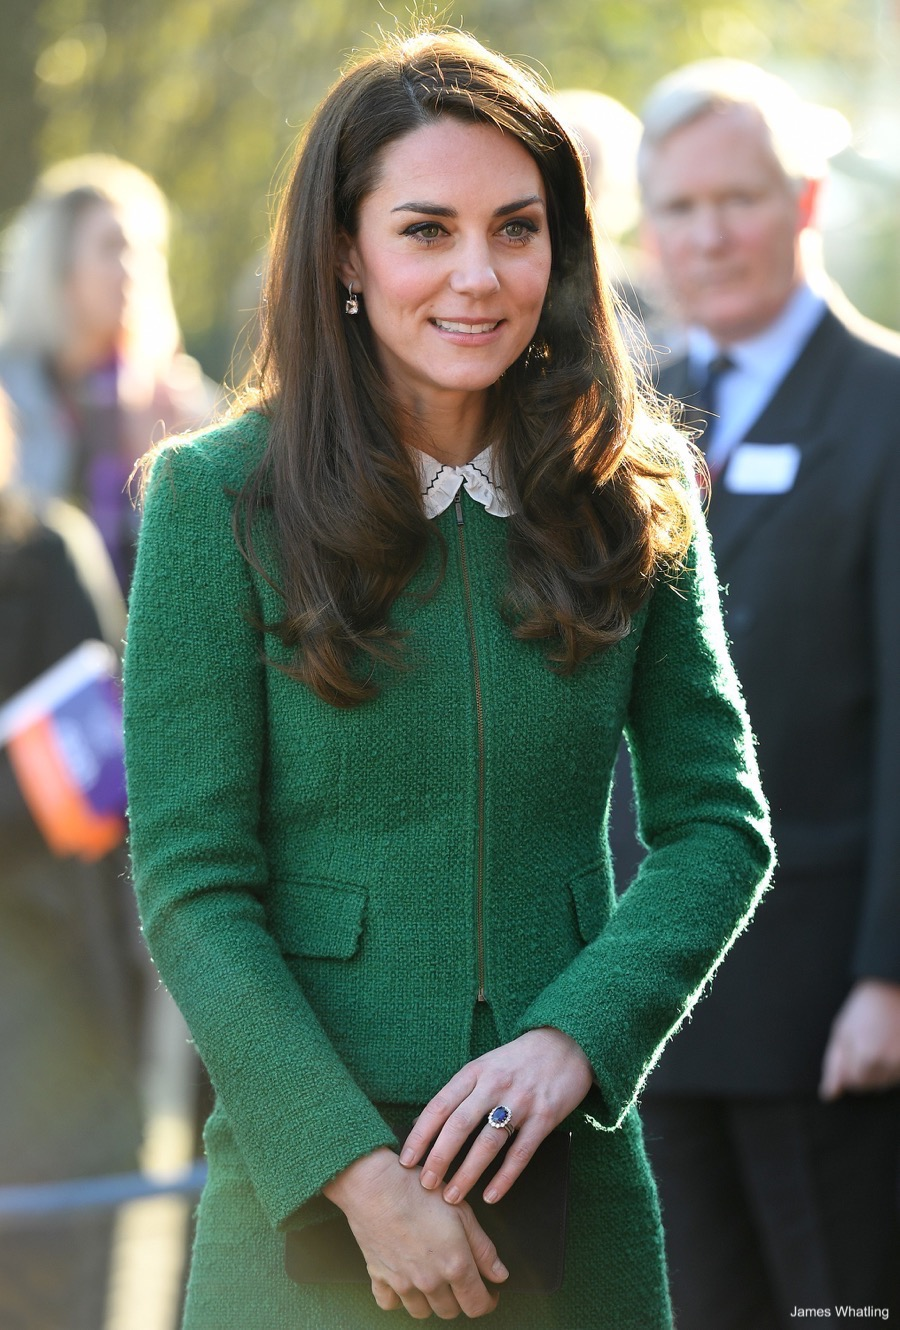 Kate Middleton wearing her engagement ring at a public engagement in Norfolk